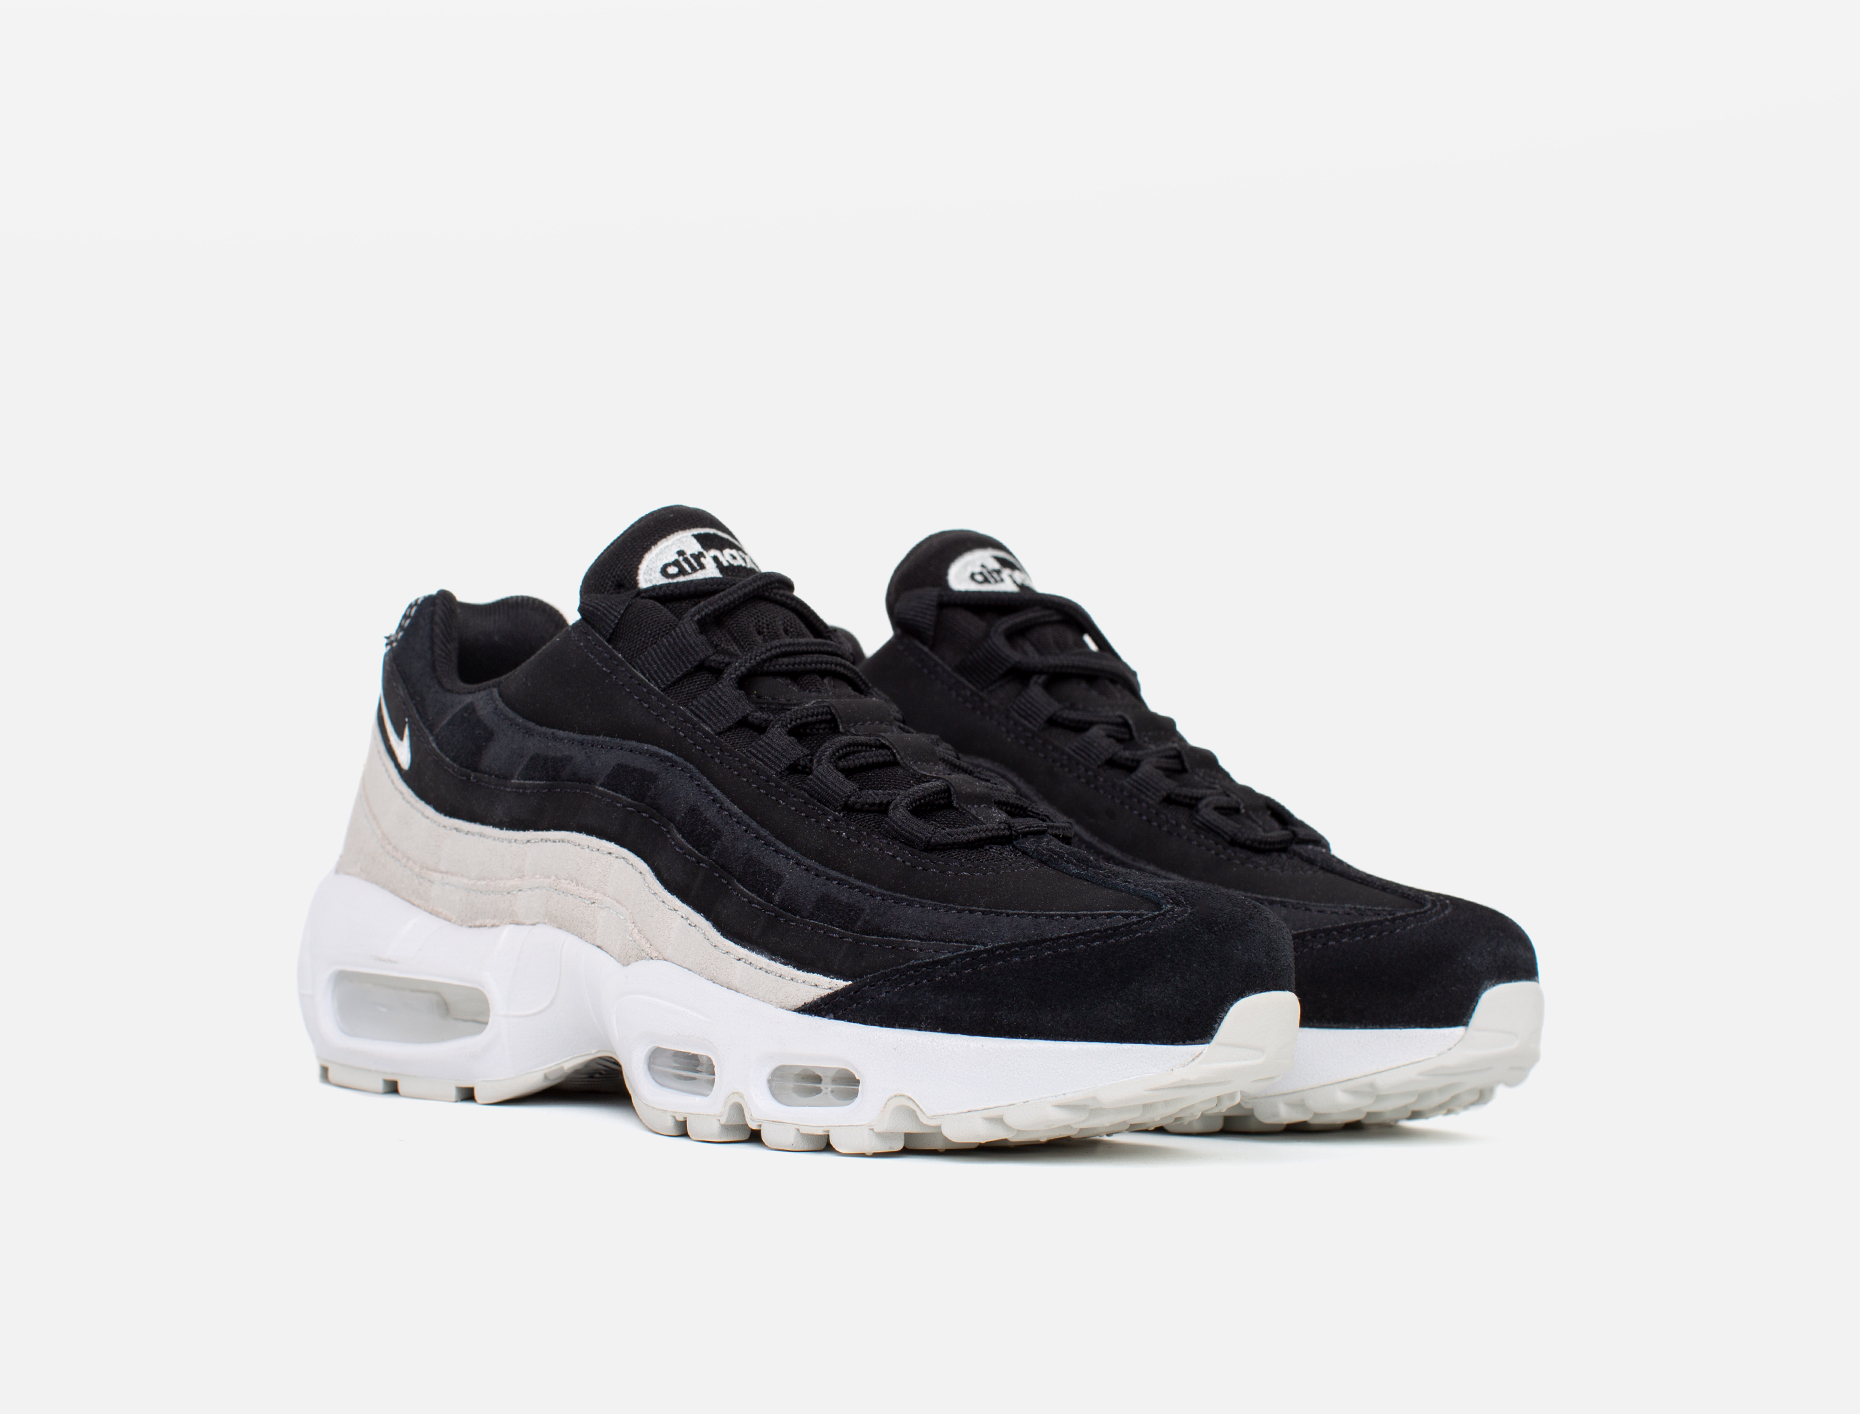 Nike W Air Max 95 Premium | Voo Store Berlin | Worldwide